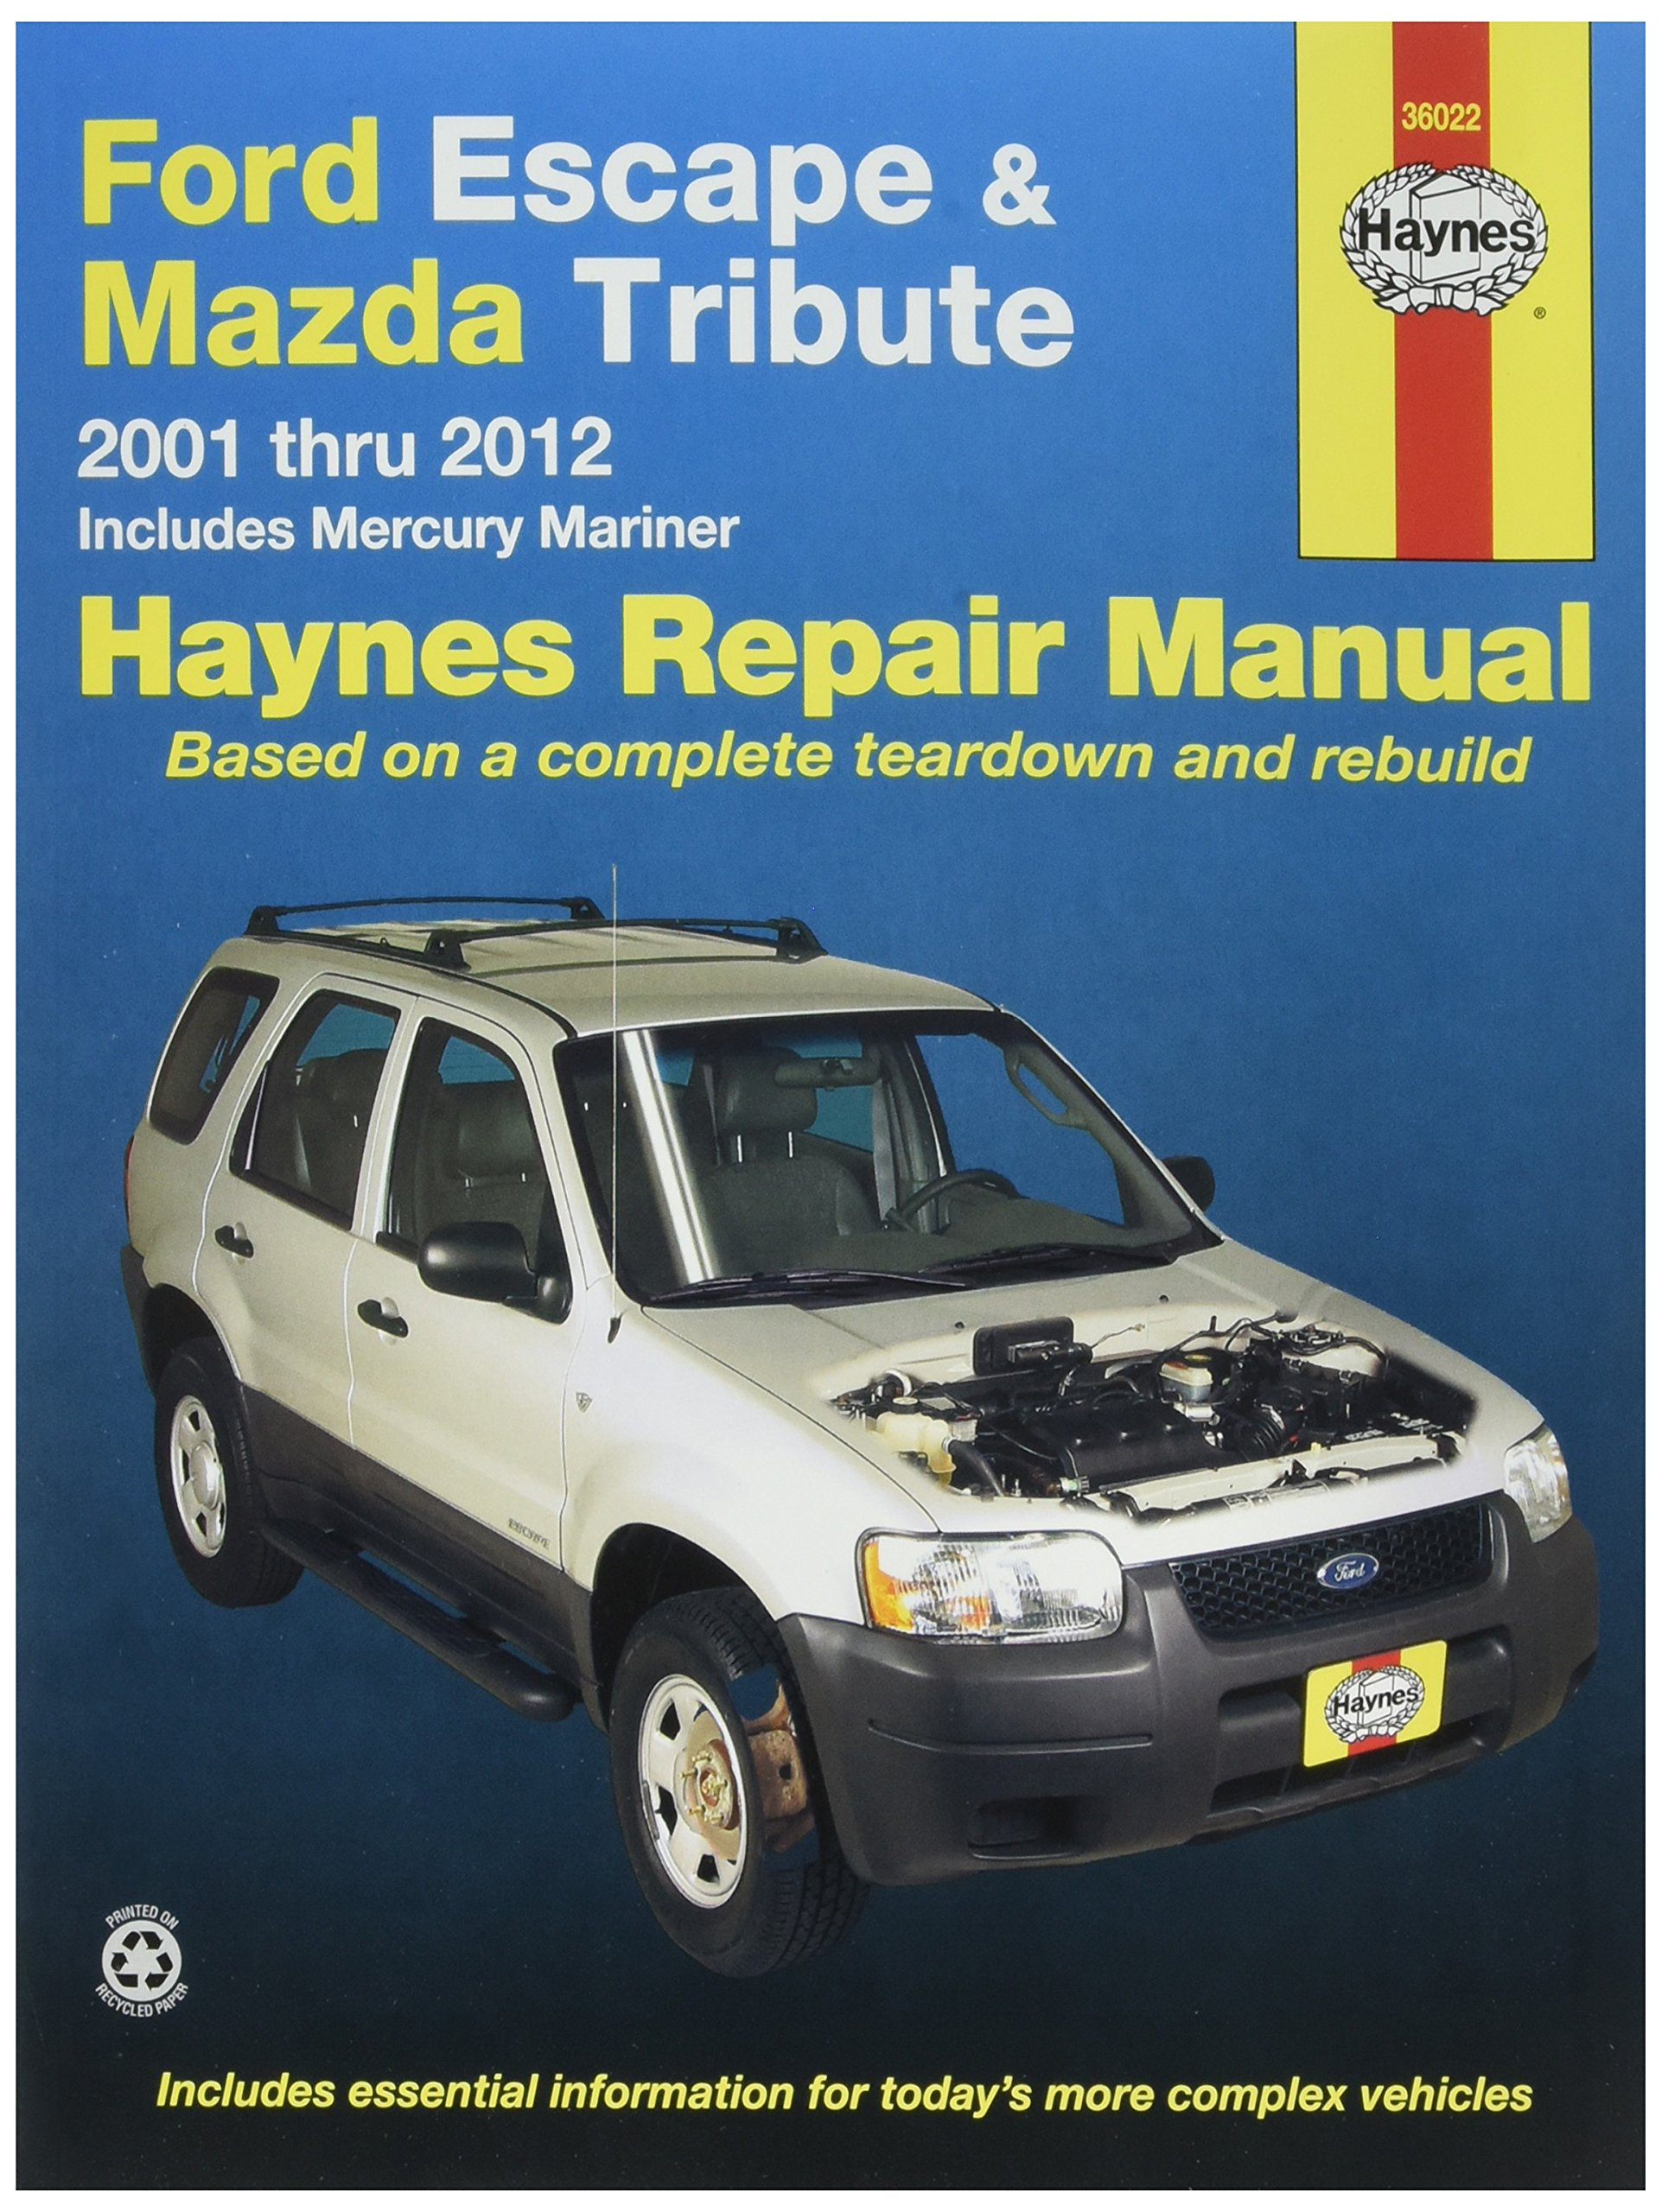 Amazon.com: Haynes Publications, Inc. 36022 Repair Manual (0038345360220):  Books